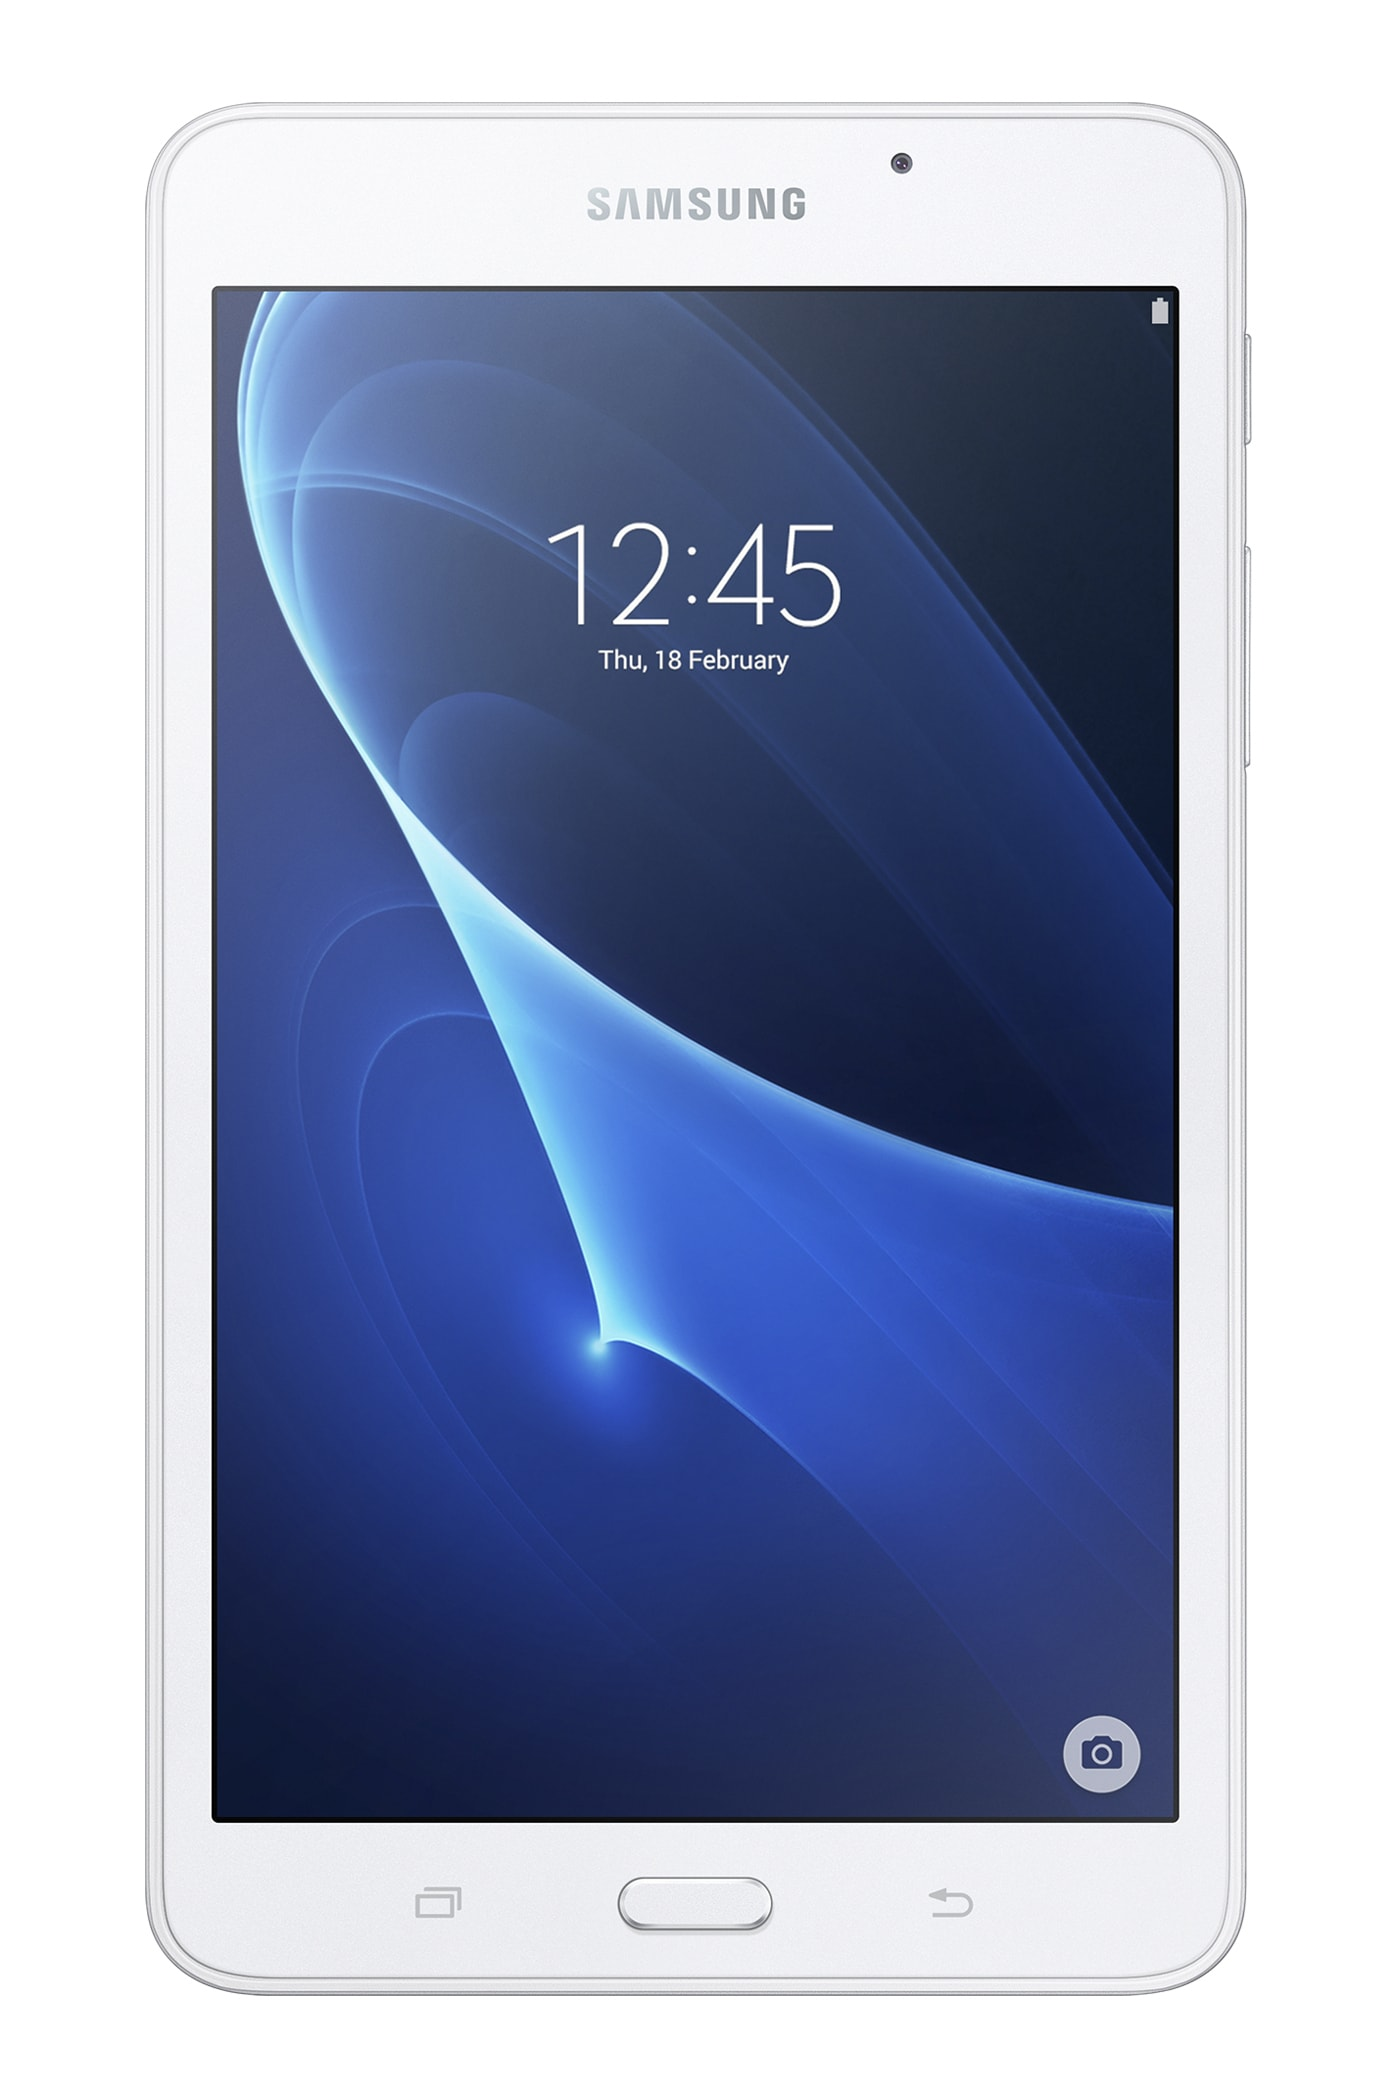 Samsung Galaxy Tab A 7.0 Wi-Fi Tablet 17,78cm/7,0'' 1,3GHz 8GB Android5.1 5MP für 139,00 Euro